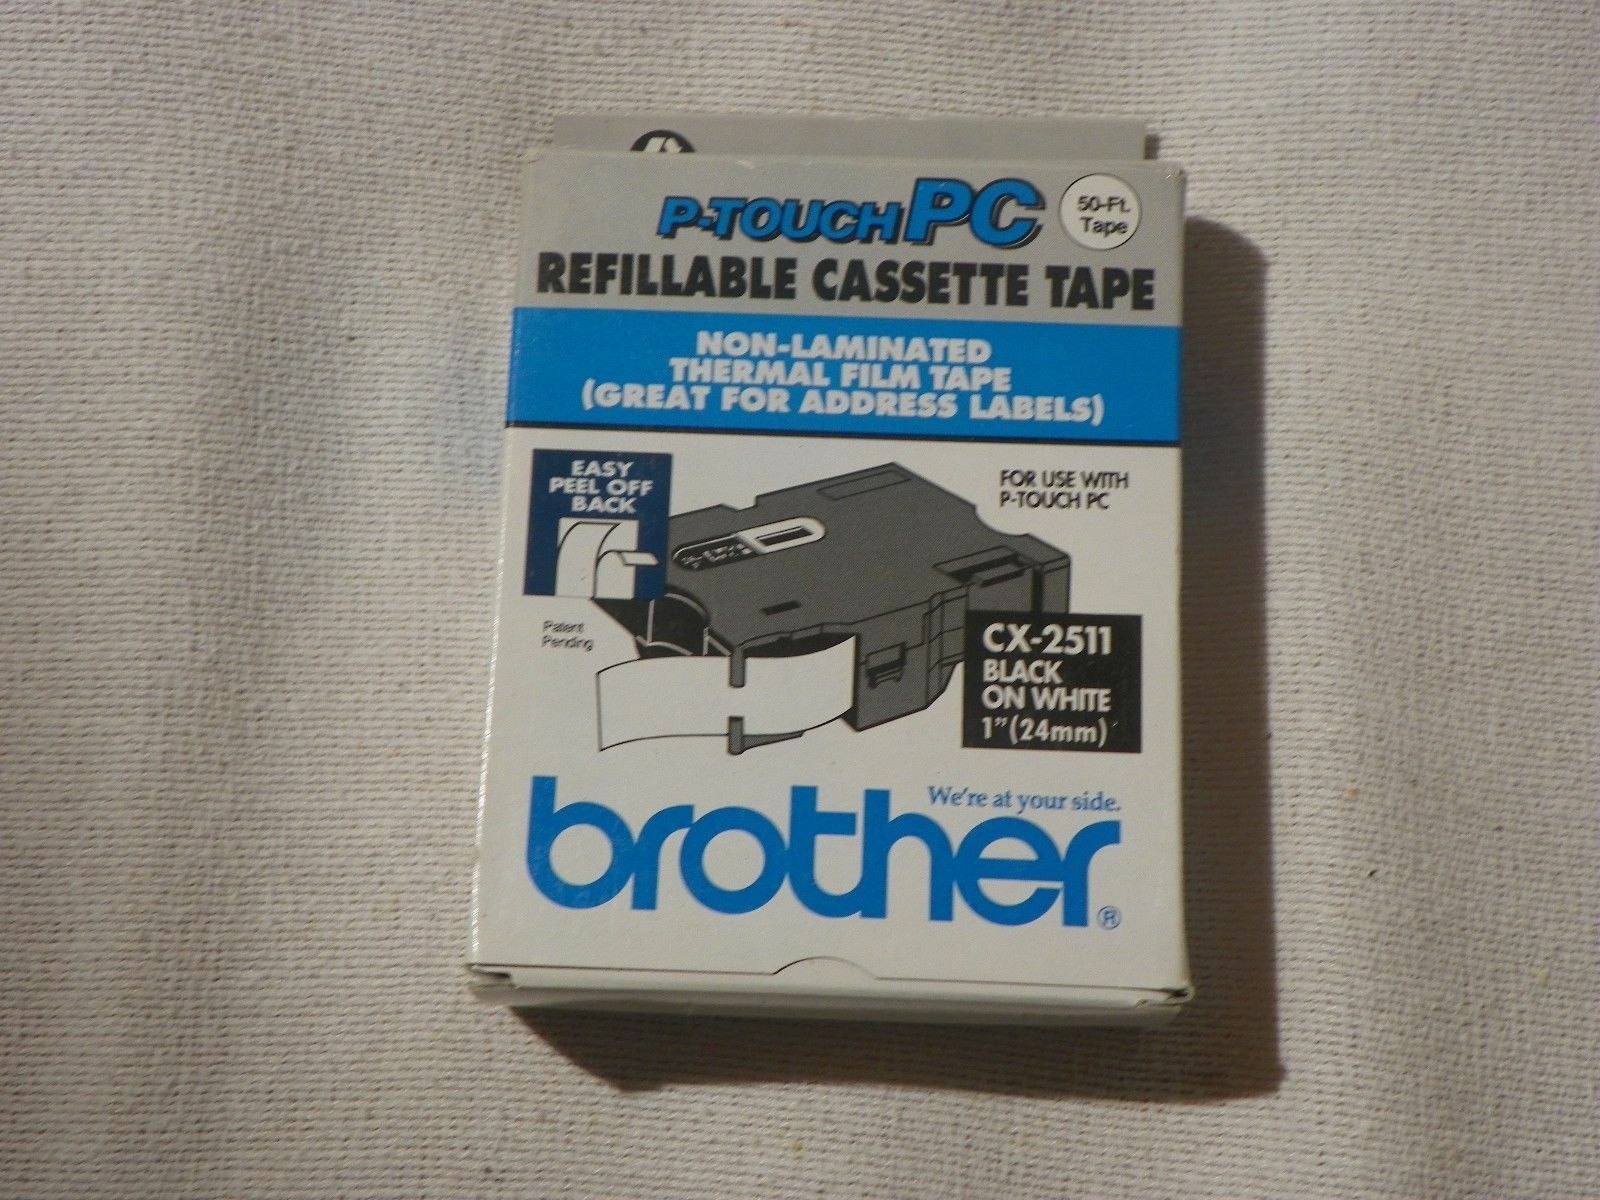 """Genuine Brother Tape CX-2511 Black Print on White Tape 1/"""" P-touch PC 24mm 50-Ft"""